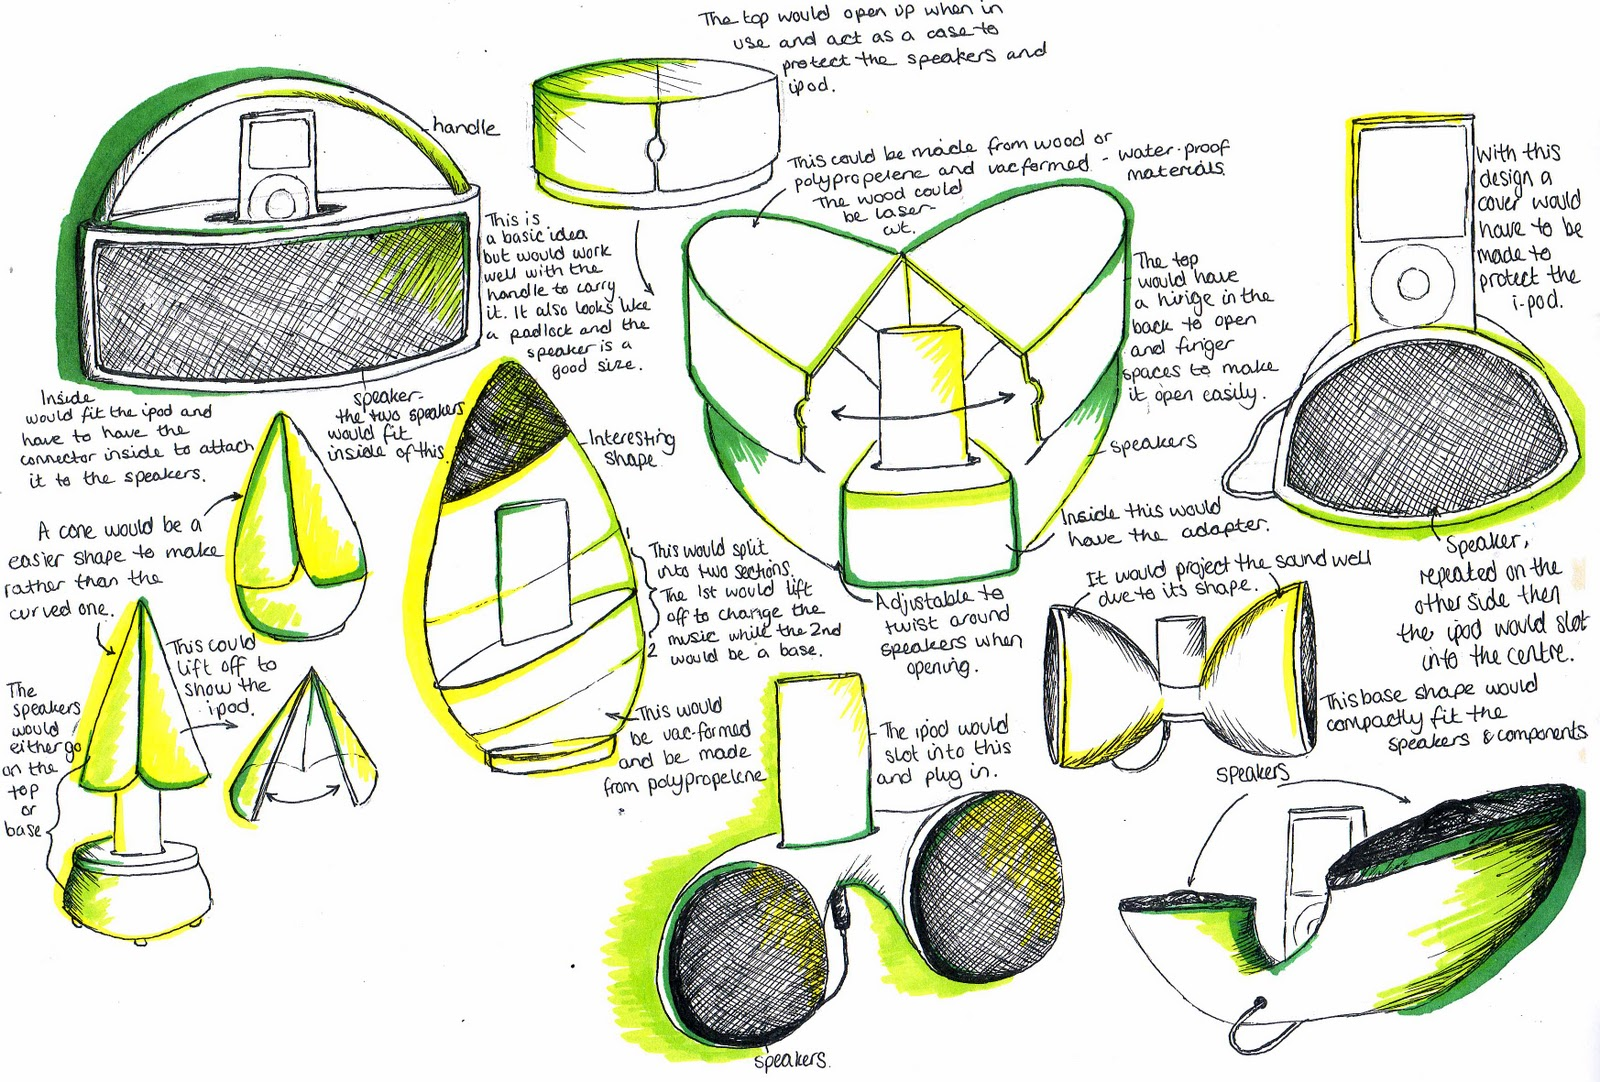 1080513417: Product Design- Solar Light and Portable I-pod Speakers